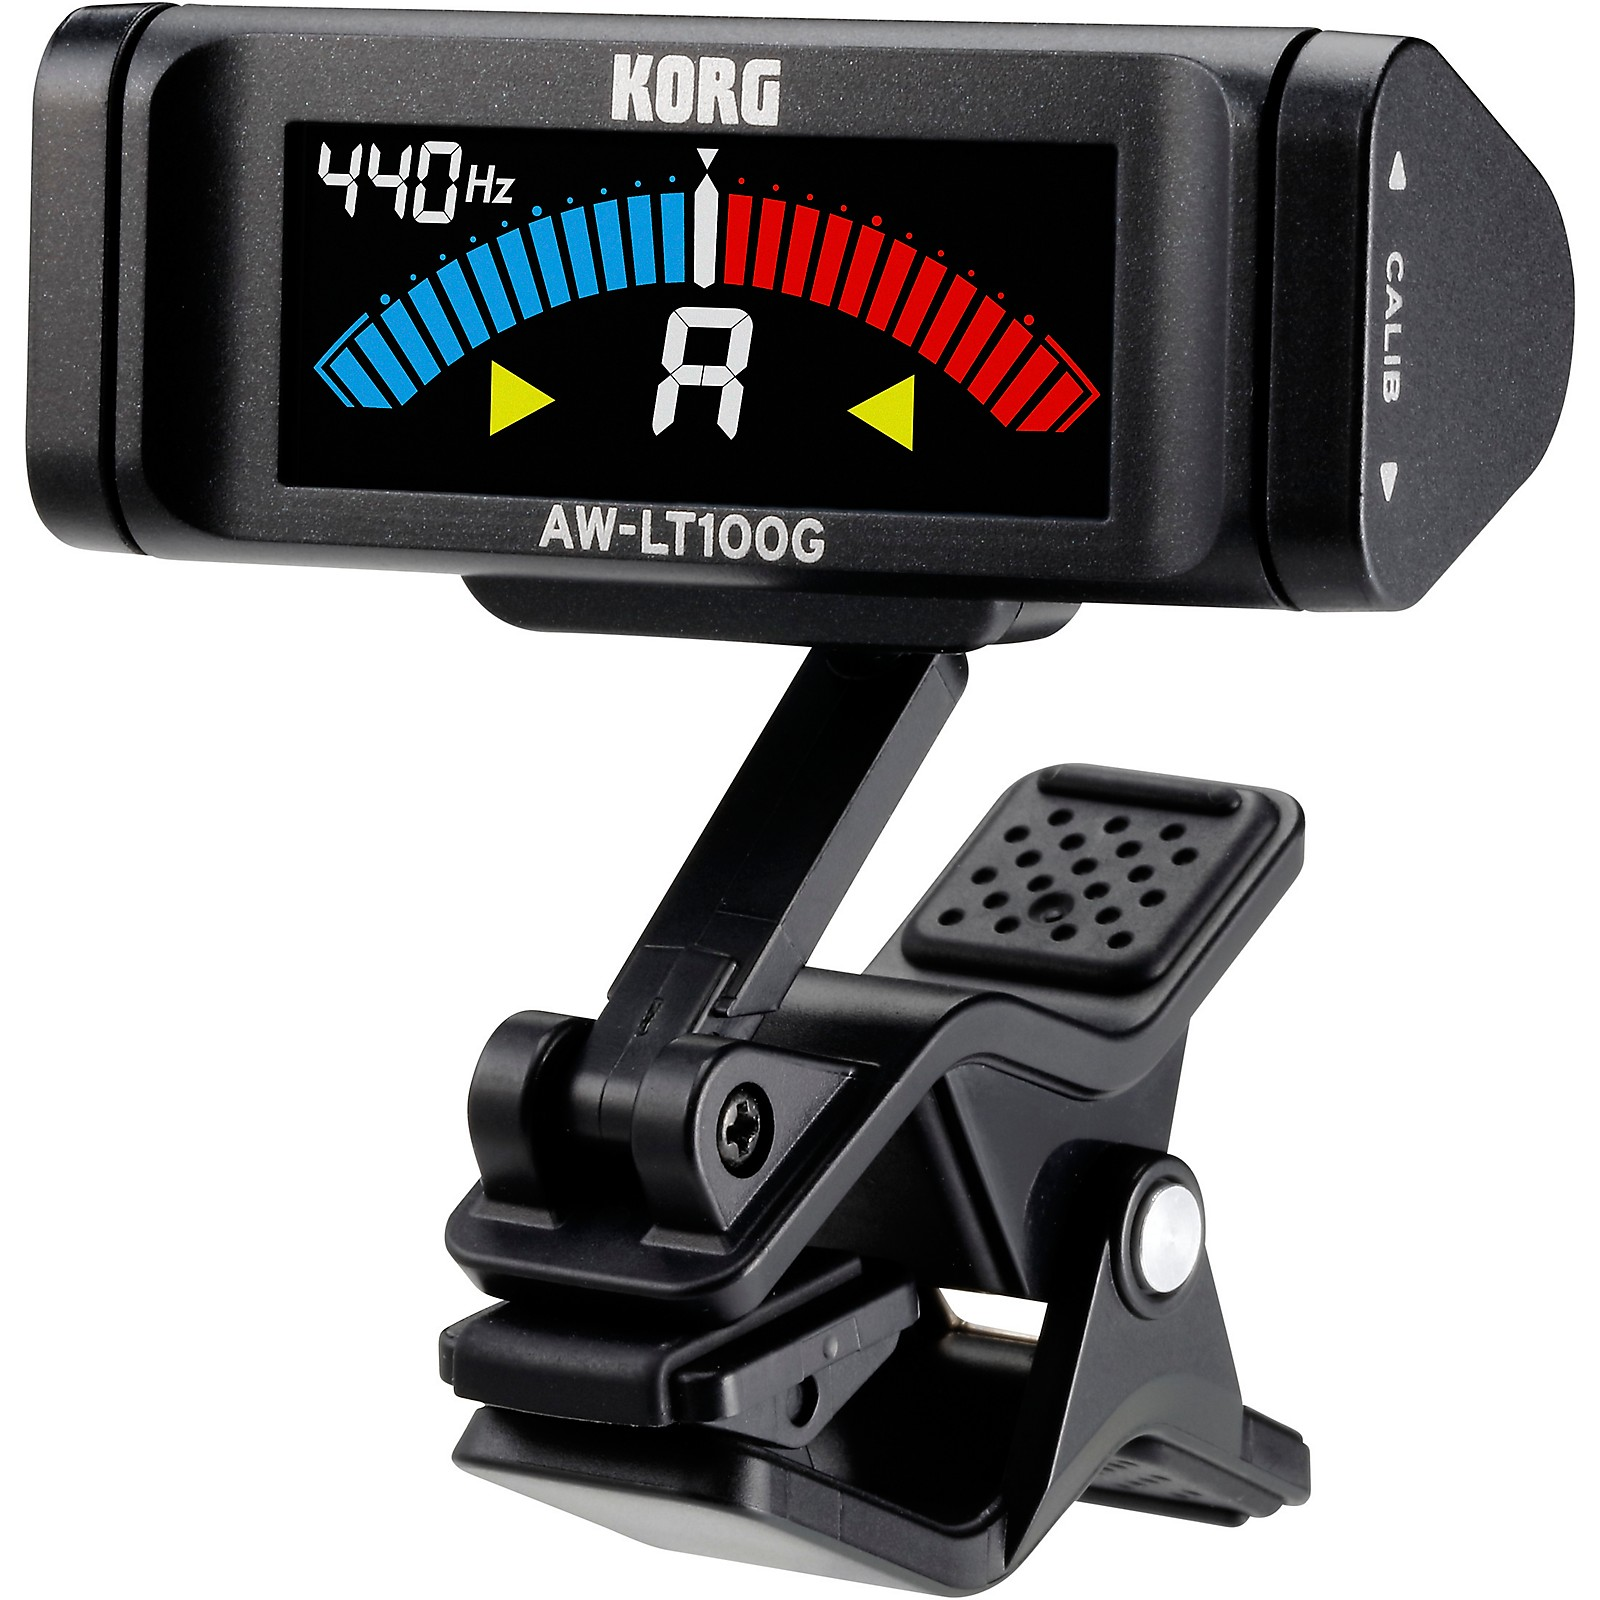 Korg AW-LT100G Clip-On Guitar Tuner